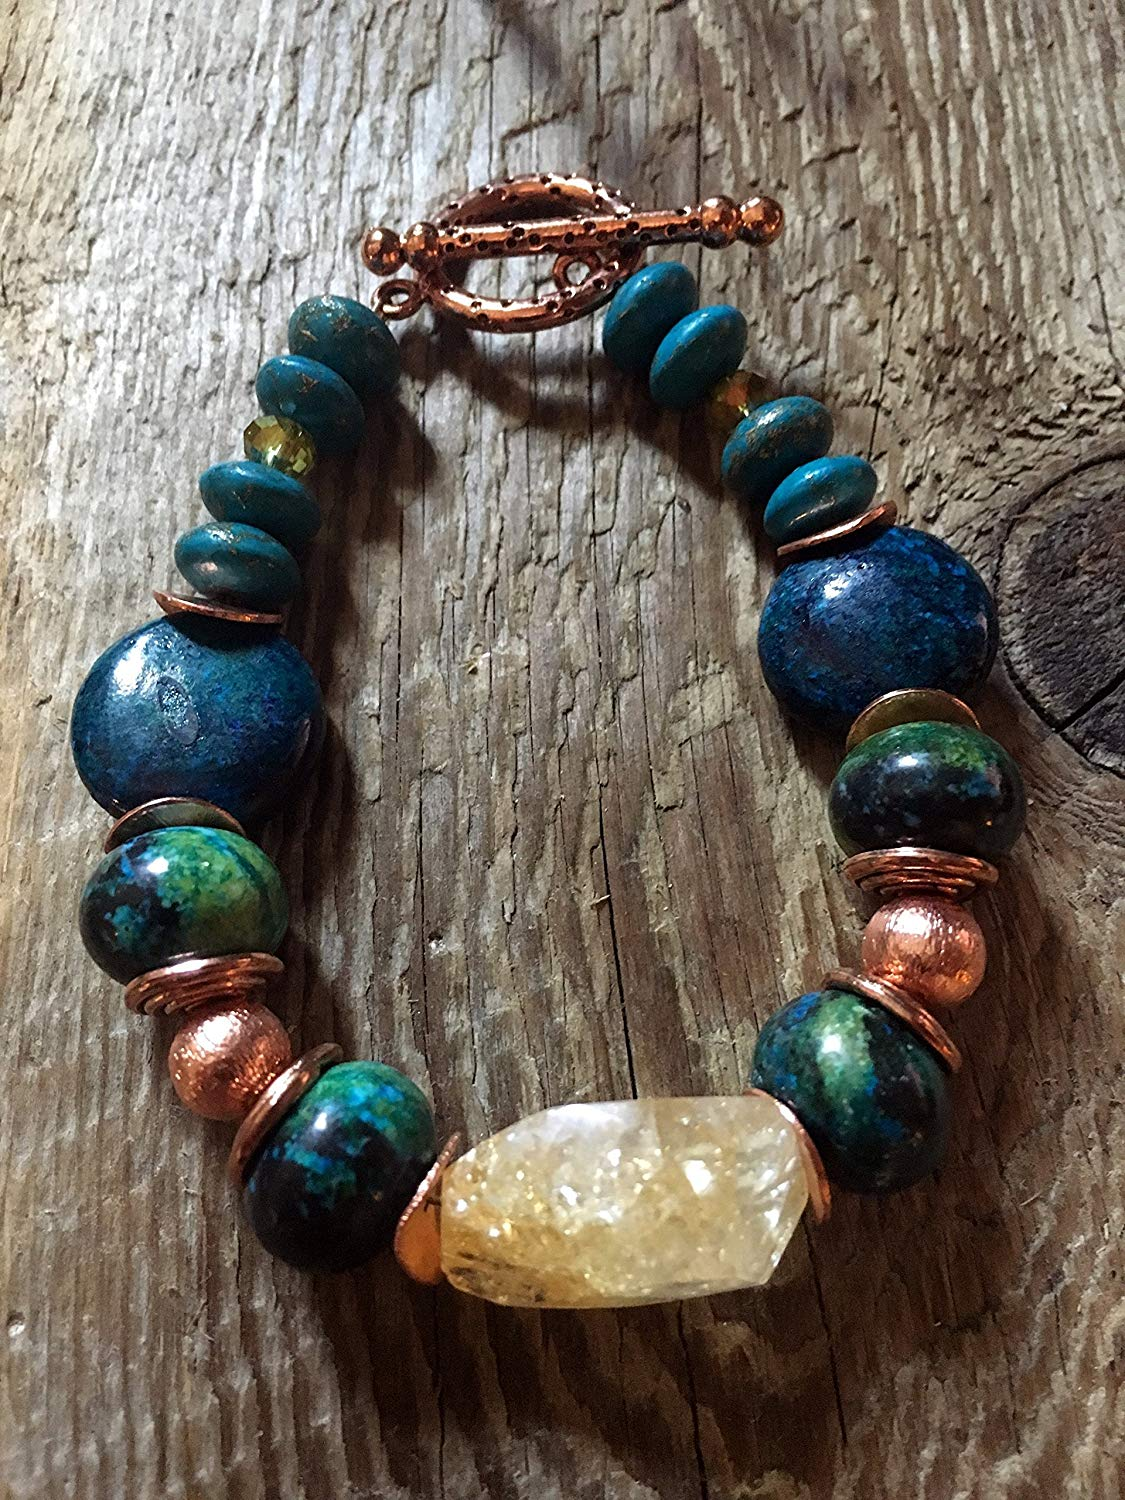 Turquoise Bracelet - Chunky Citrine Nugget, Eclectic Mixed Media of Turquoise Stones, Copper Swirl End Caps and a Pitted Large Copper Toggle Clasp